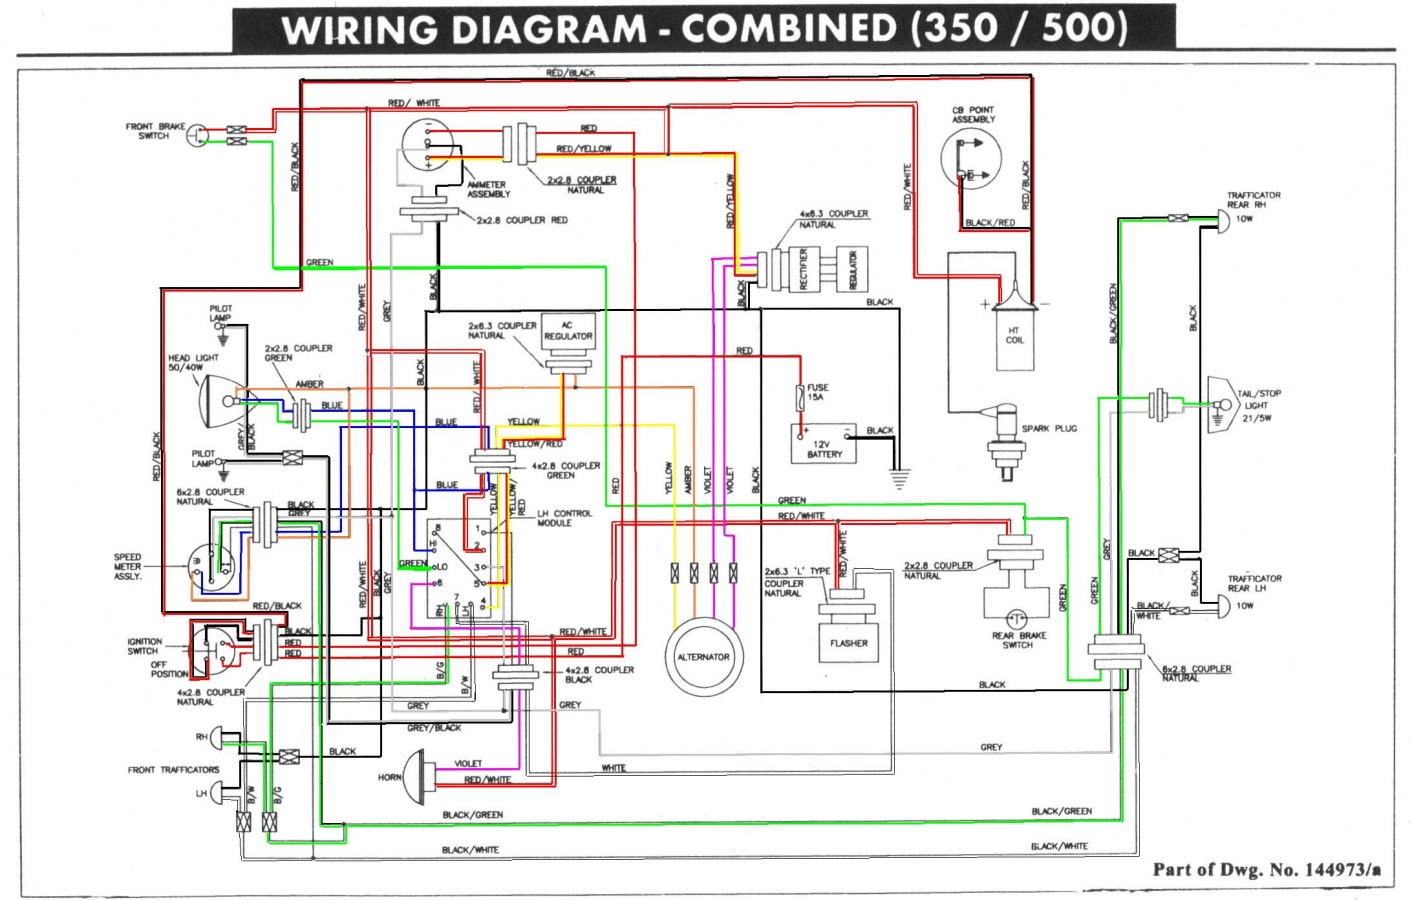 diagrams 875667 royal enfield bullet wiring diagram royal royal enfield wiring diagram free at gsmportal.co